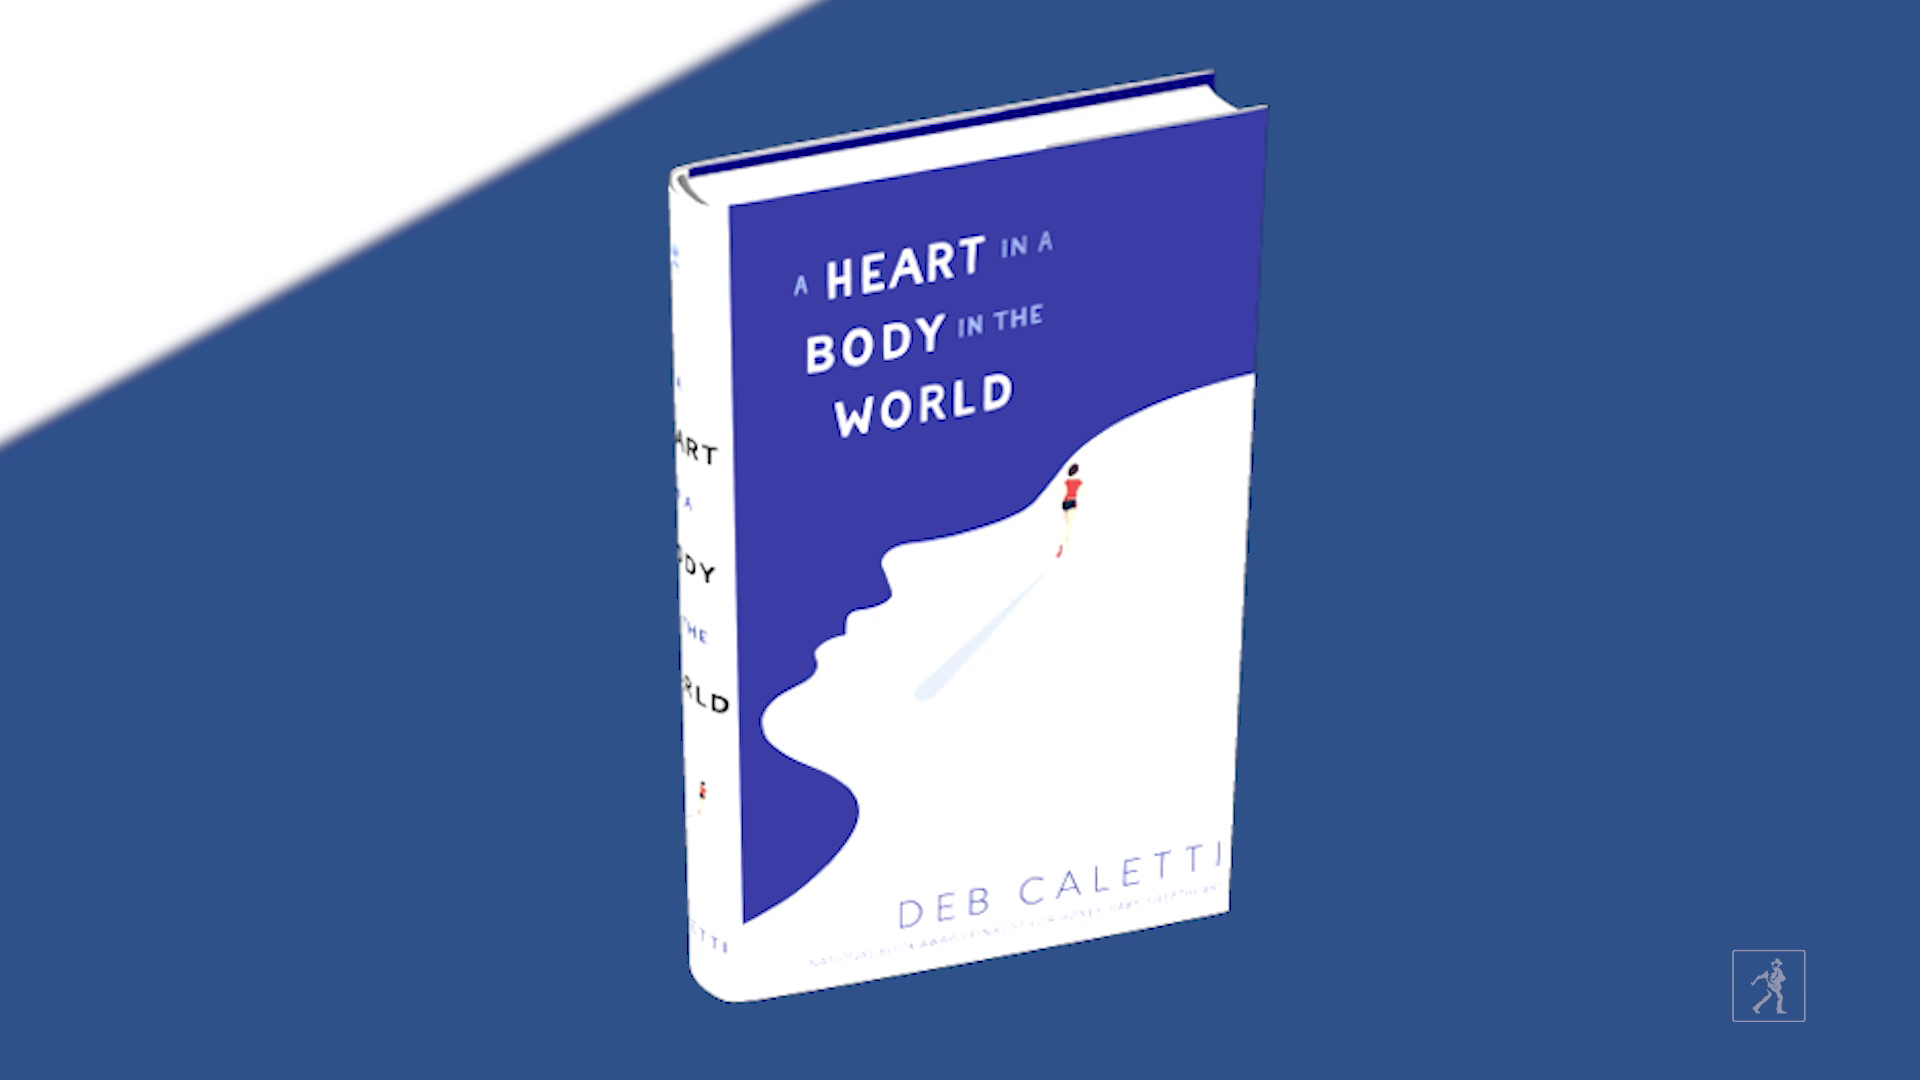 Deb Caletti Discusses Her New Novel A HEART IN A BODY IN THE WORLD